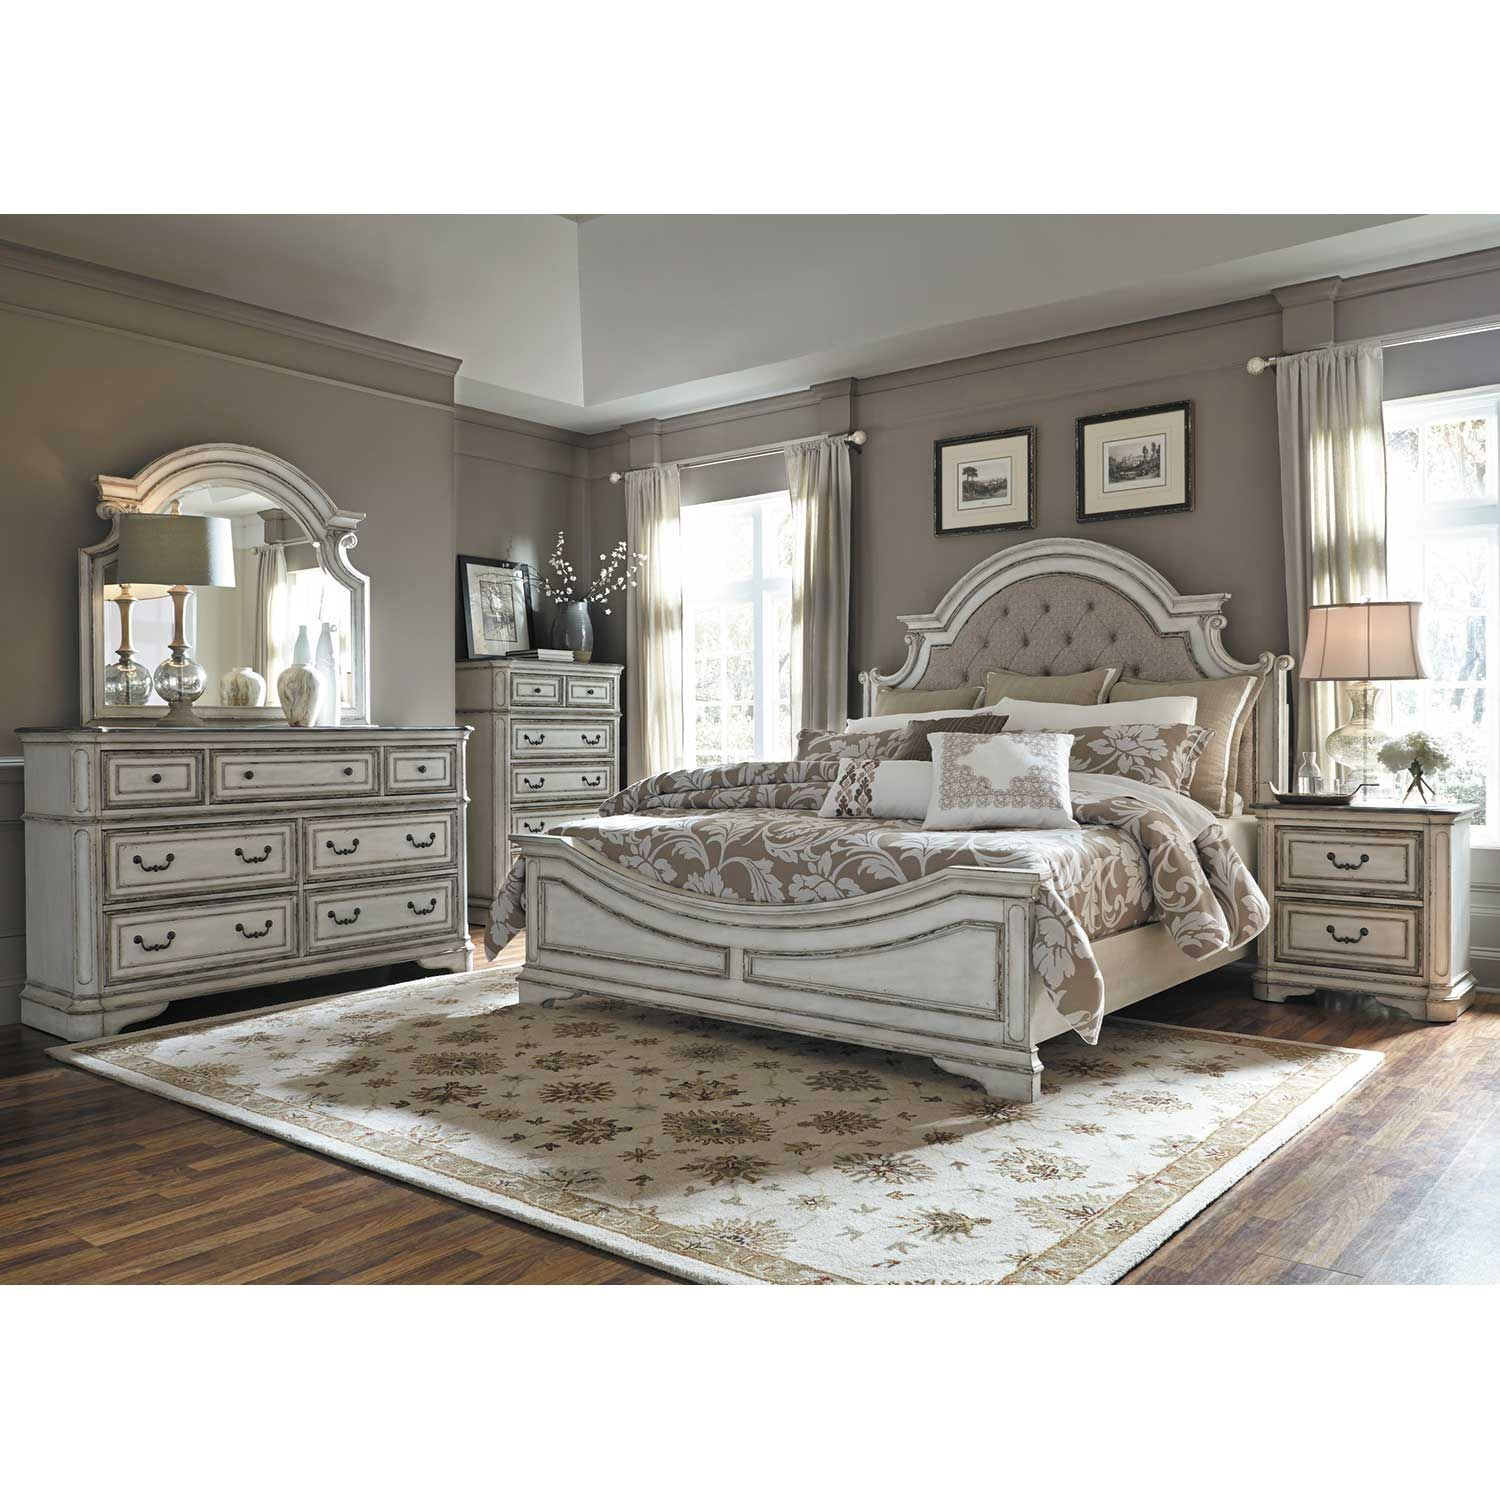 Picture of Magnolia Manor Queen Bed